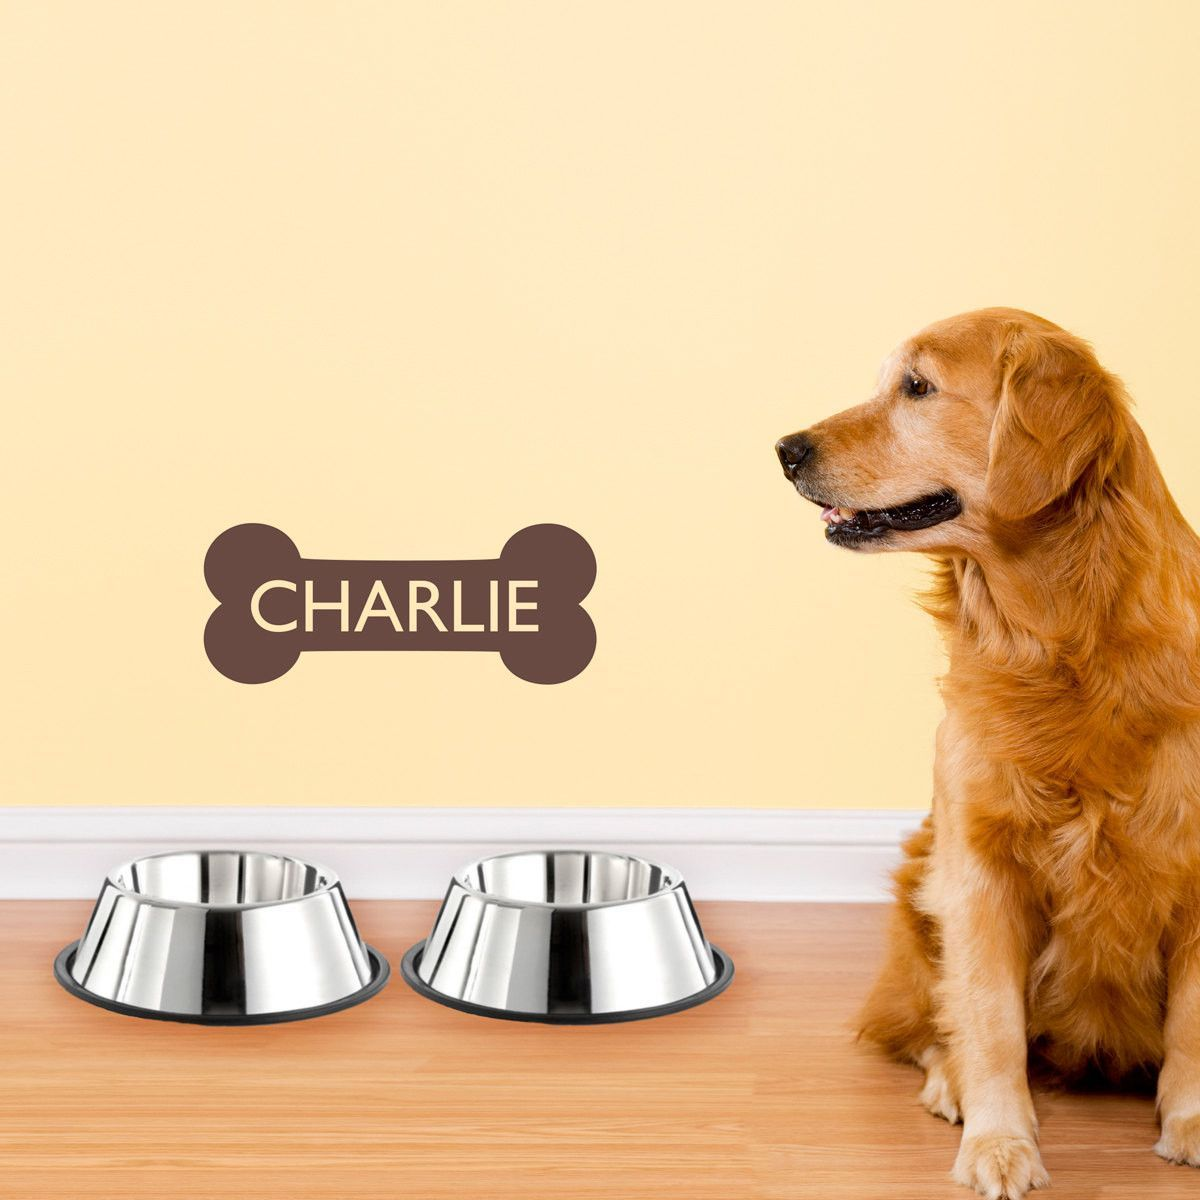 Personalized Dog Name - Dog Bone Wall Decal | Products | Pinterest ...